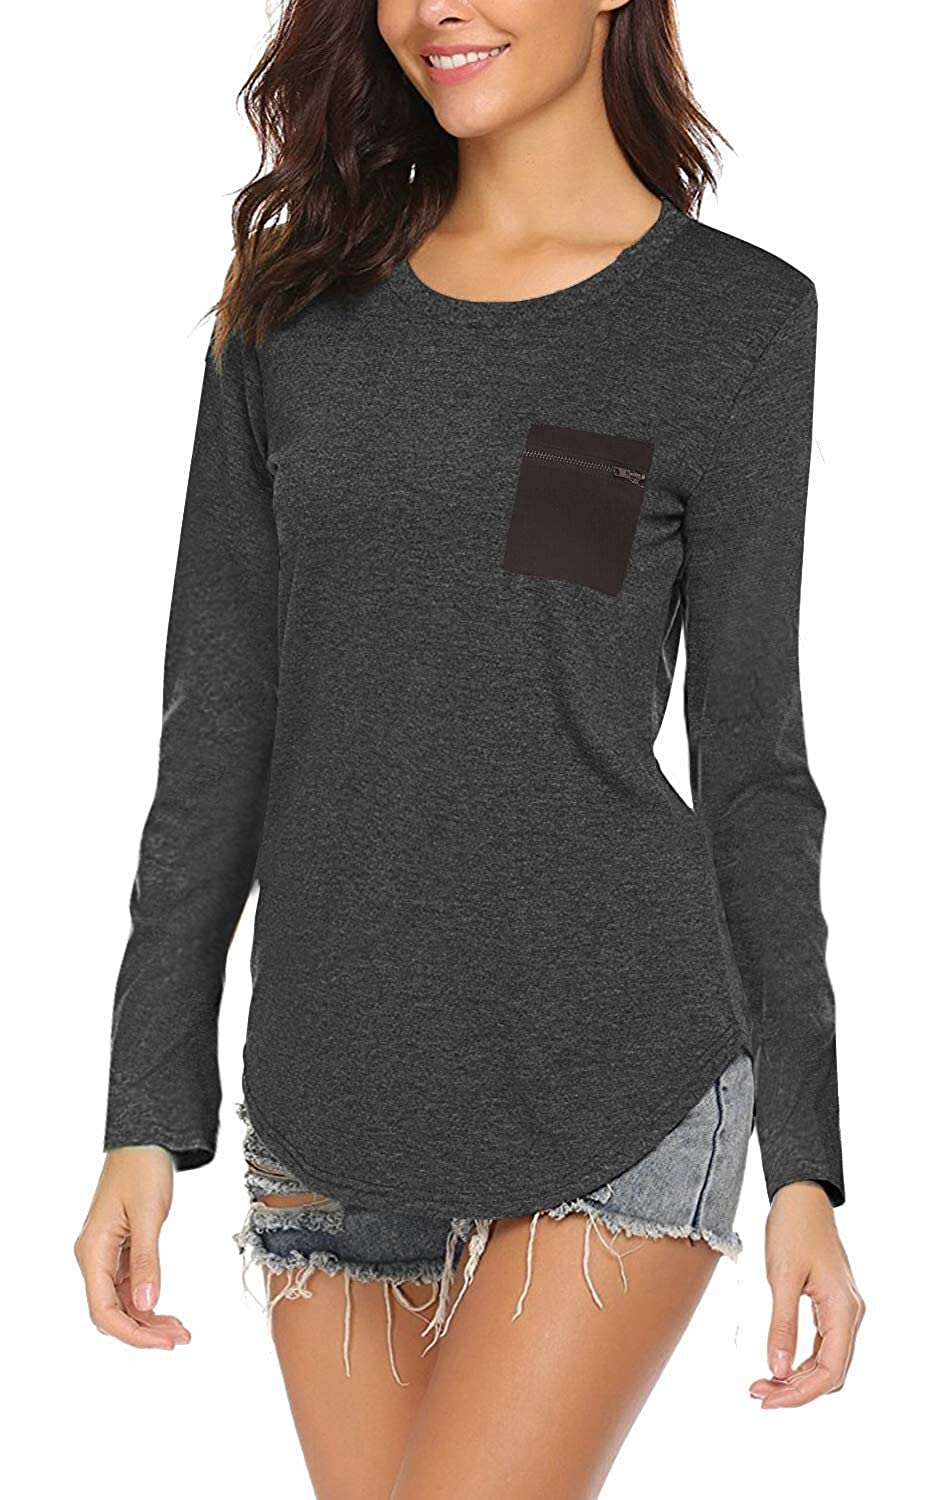 Dark Grey OURS Women's Casual Striped Long Sleeve Round Neck Floral T Shirts Blouse Tops